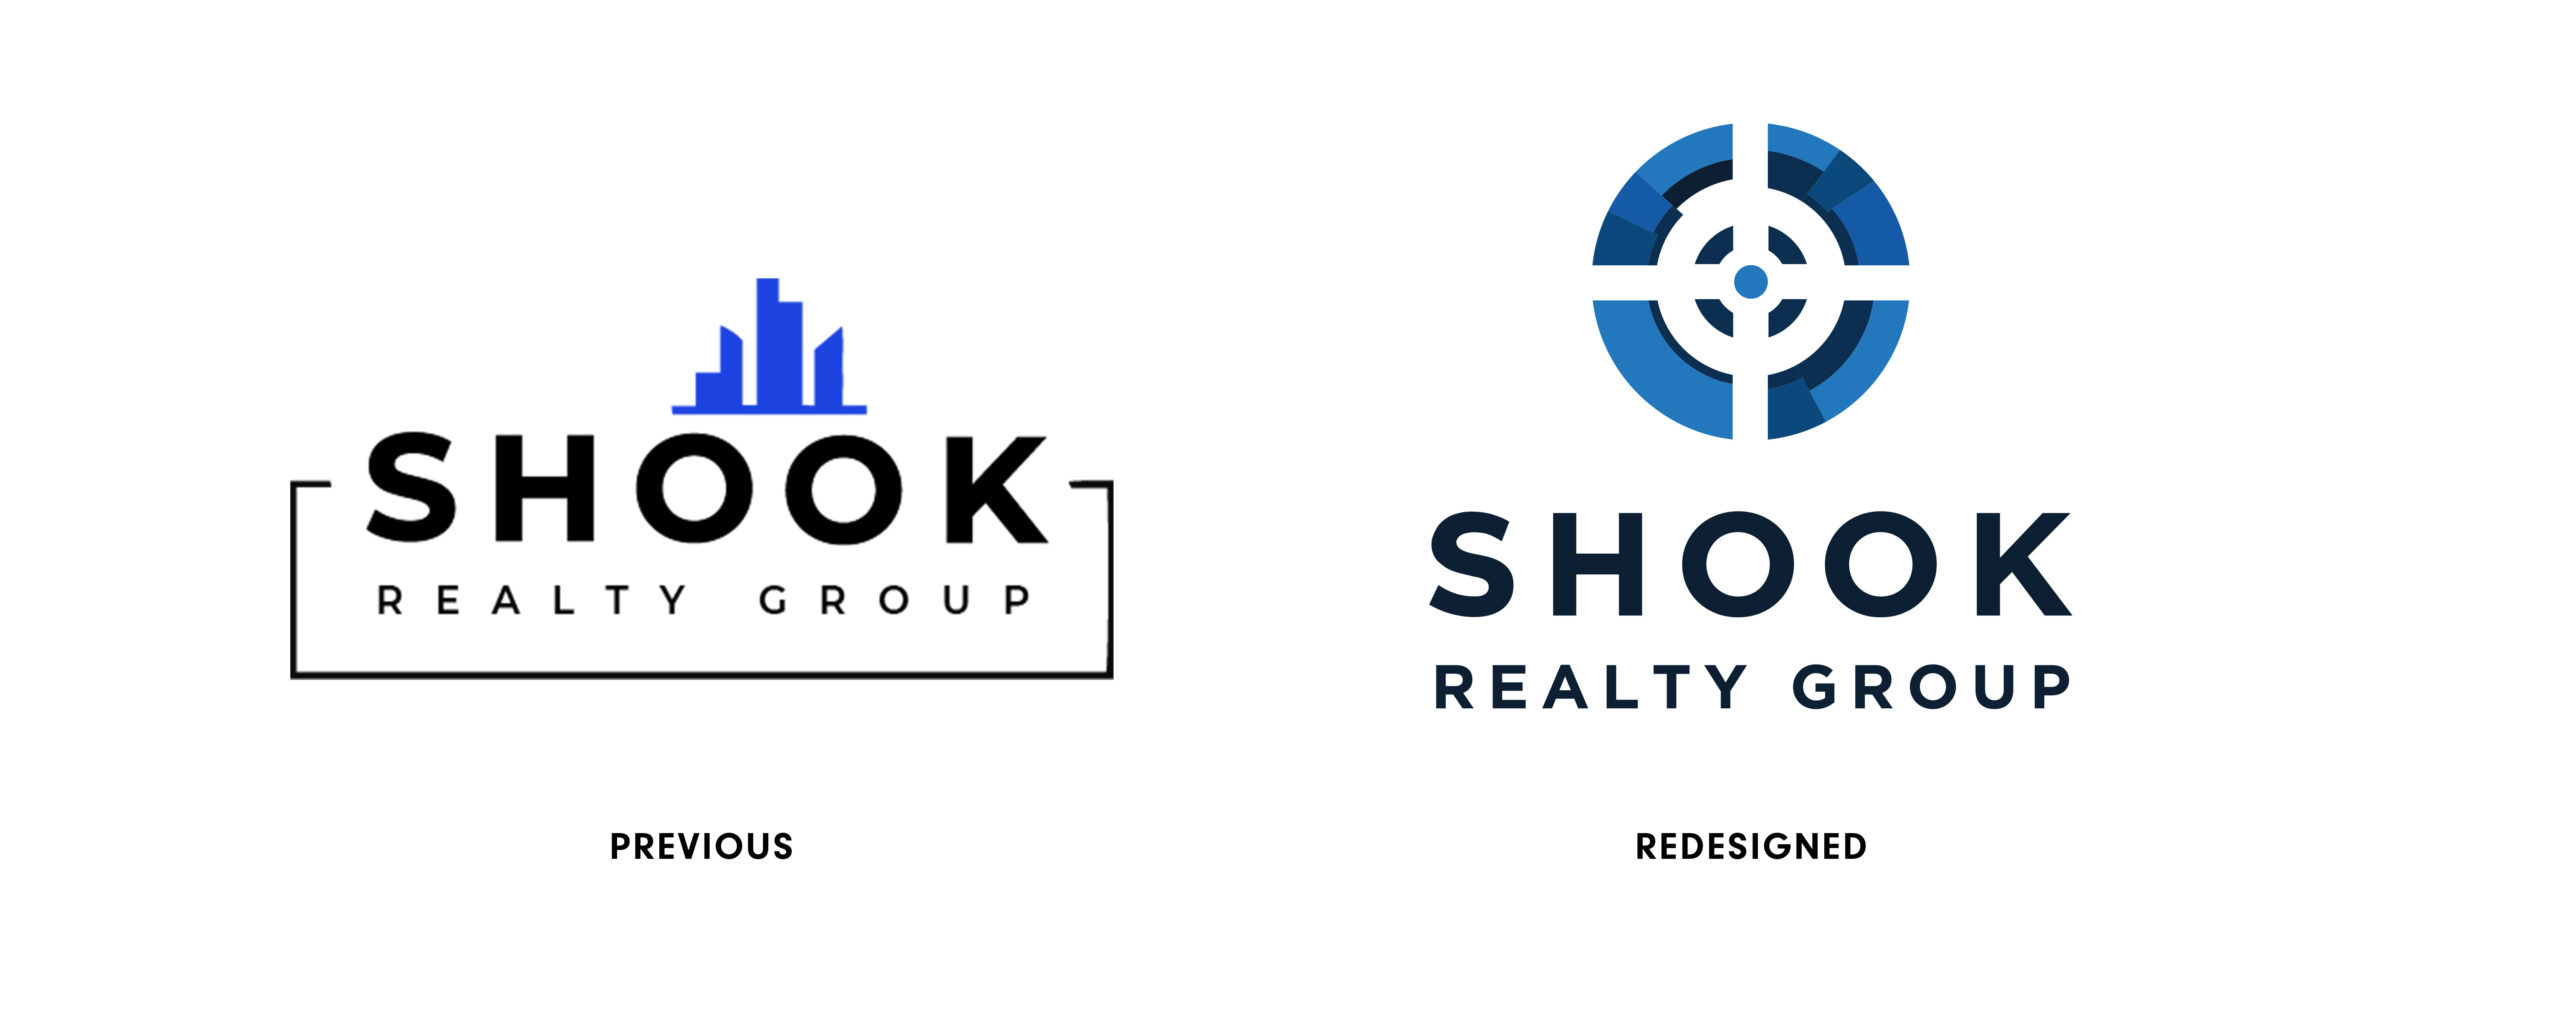 Shook beforeafter scaled Brand Guideline and Logo Refresh: Shook Realty Group